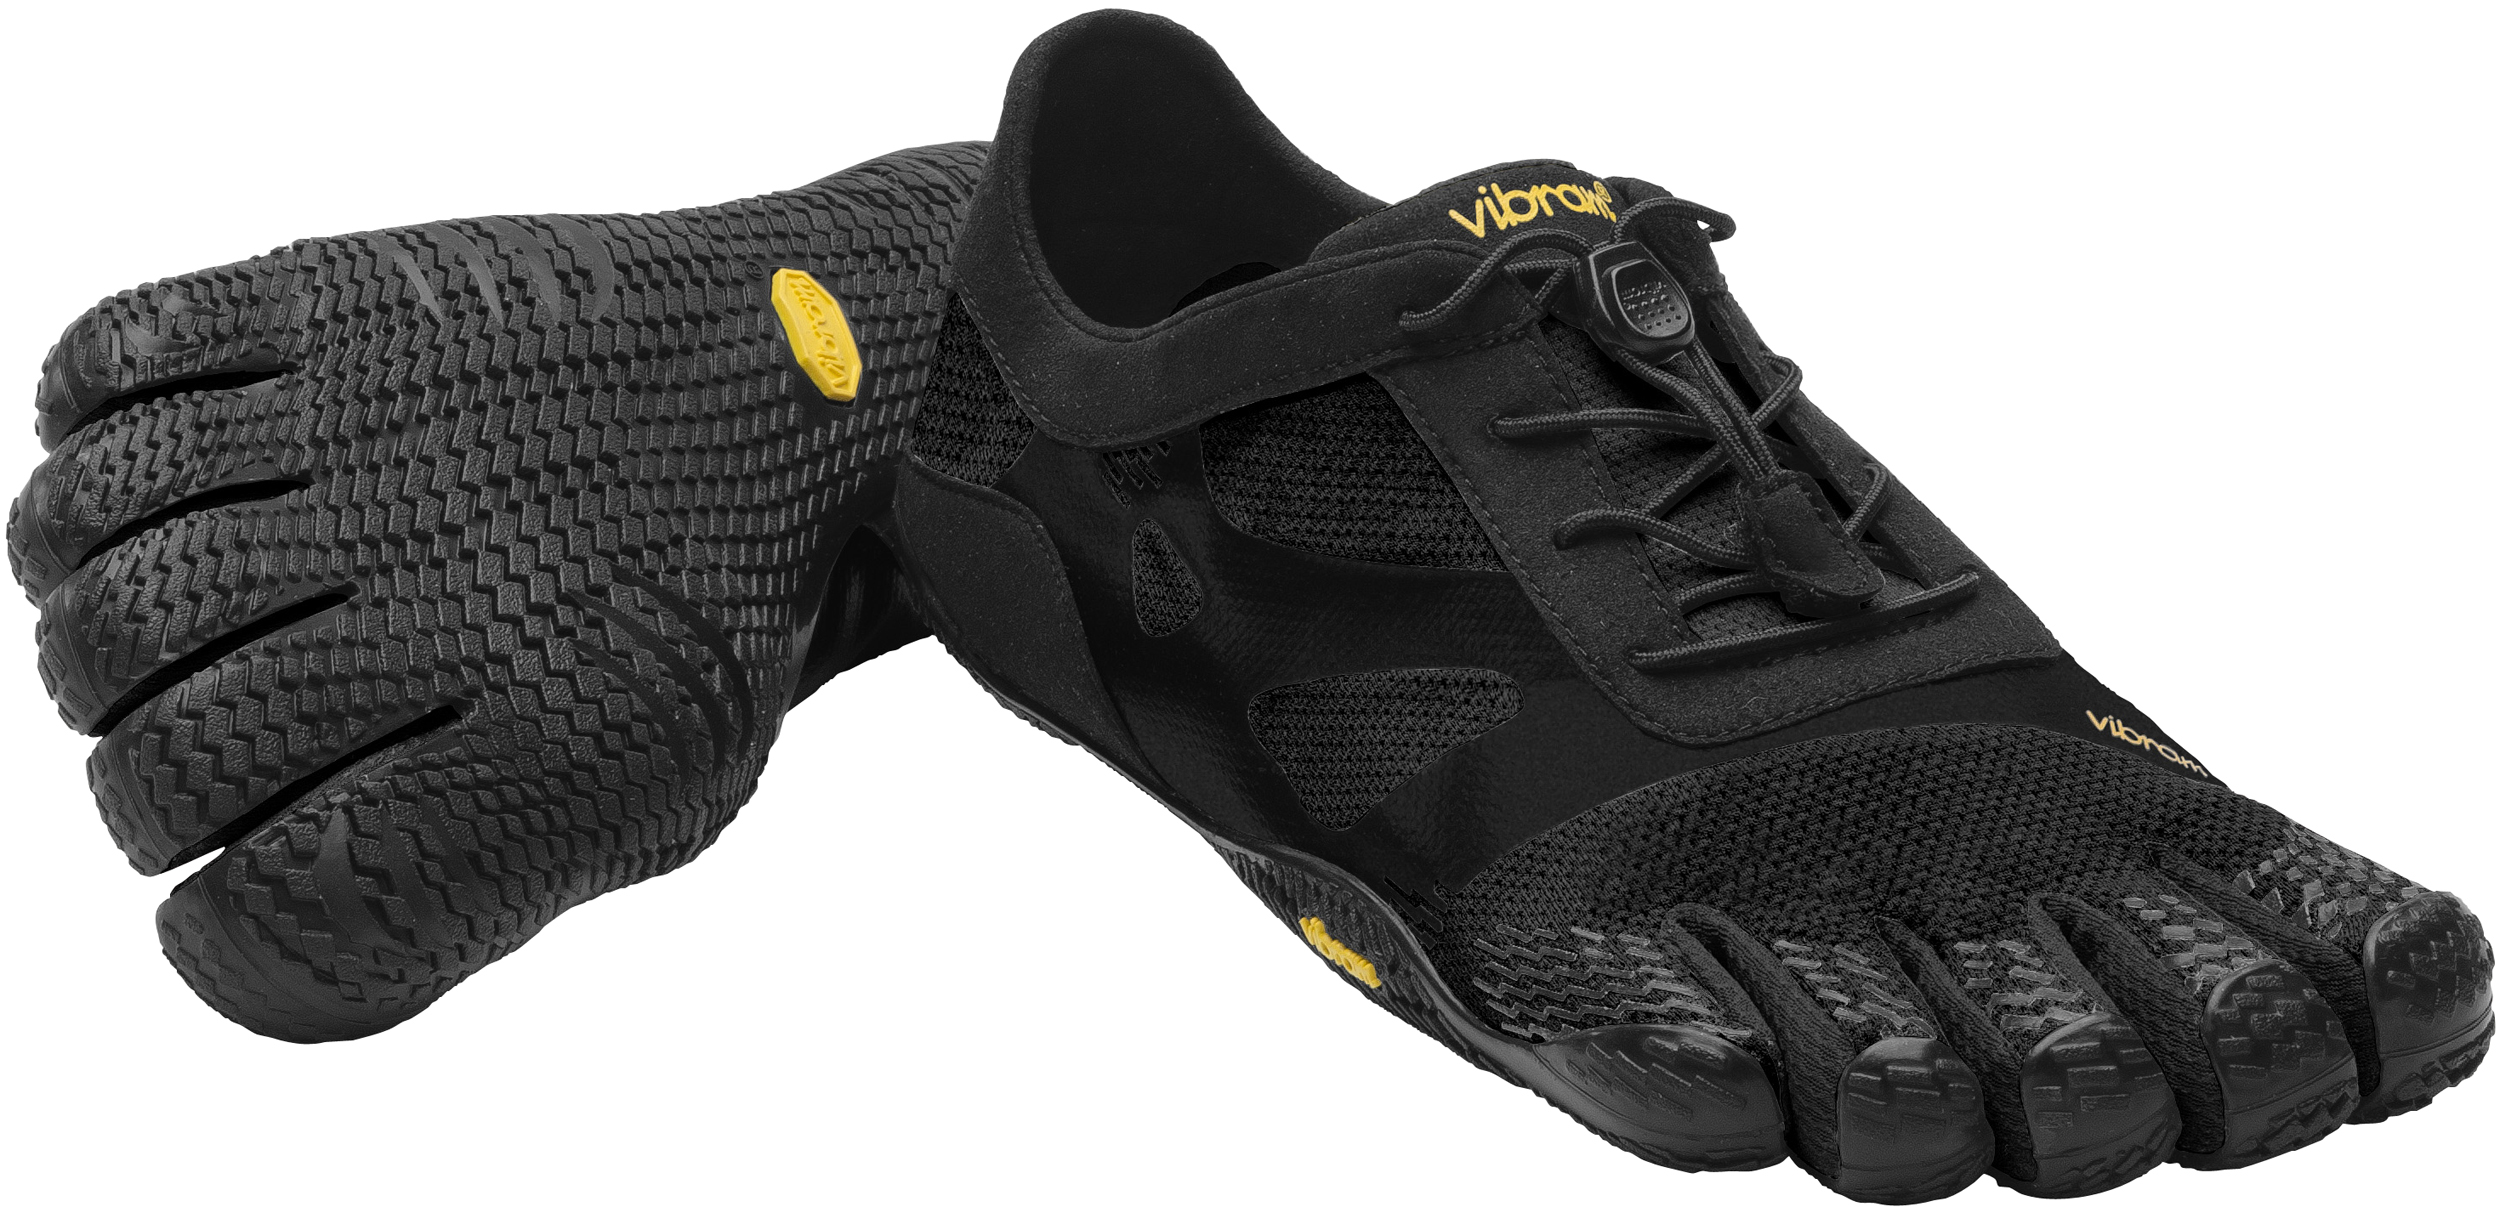 Chaussures Vibram Montreal